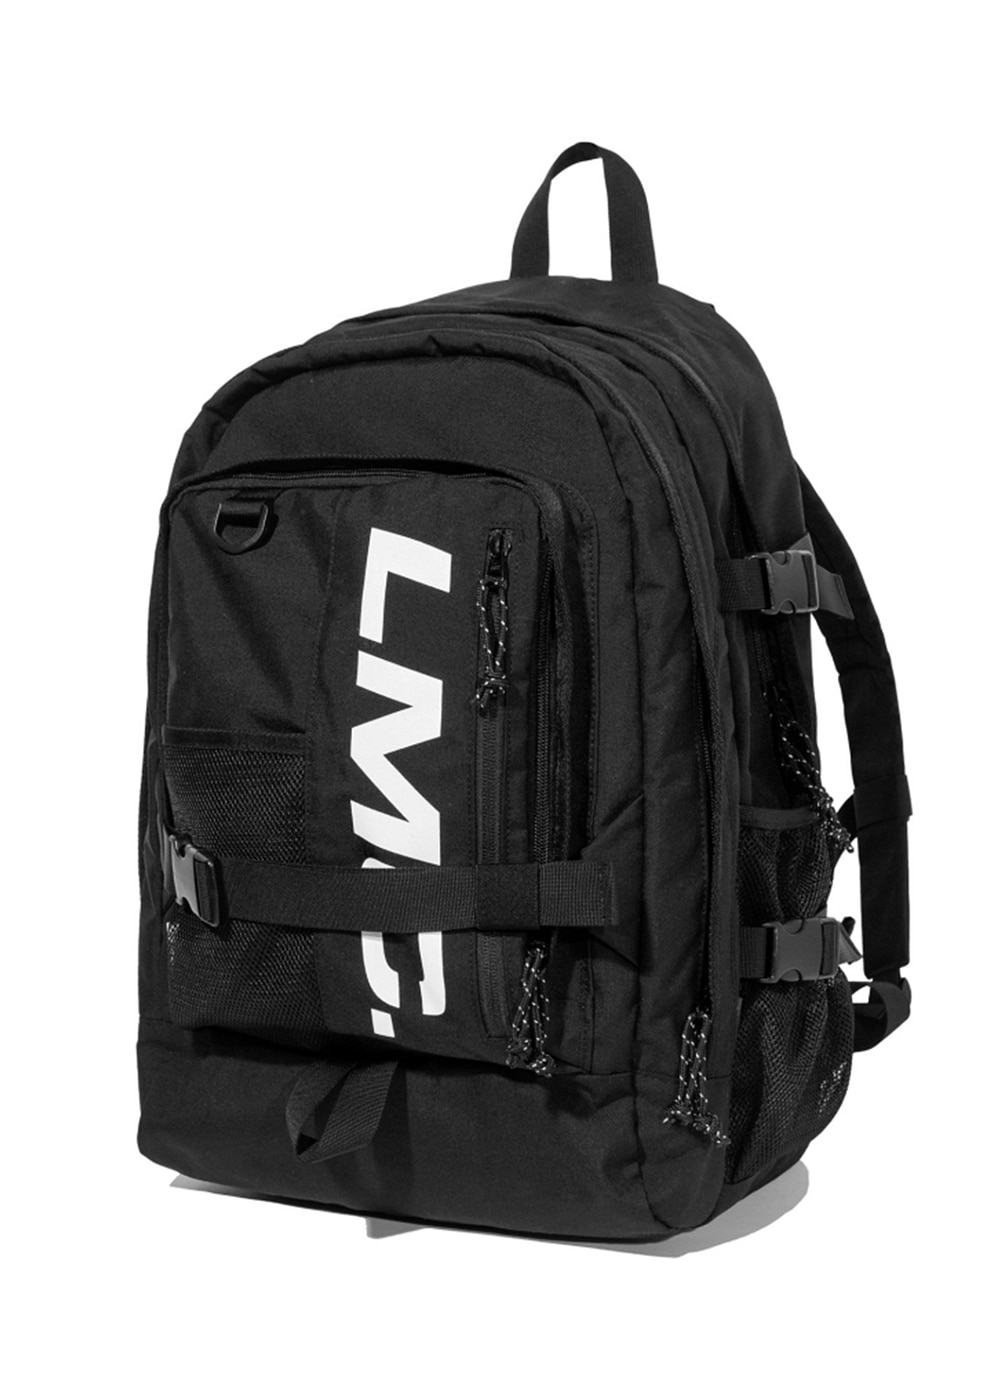 LMC SYSTEM VERTICAL BACKPACK black